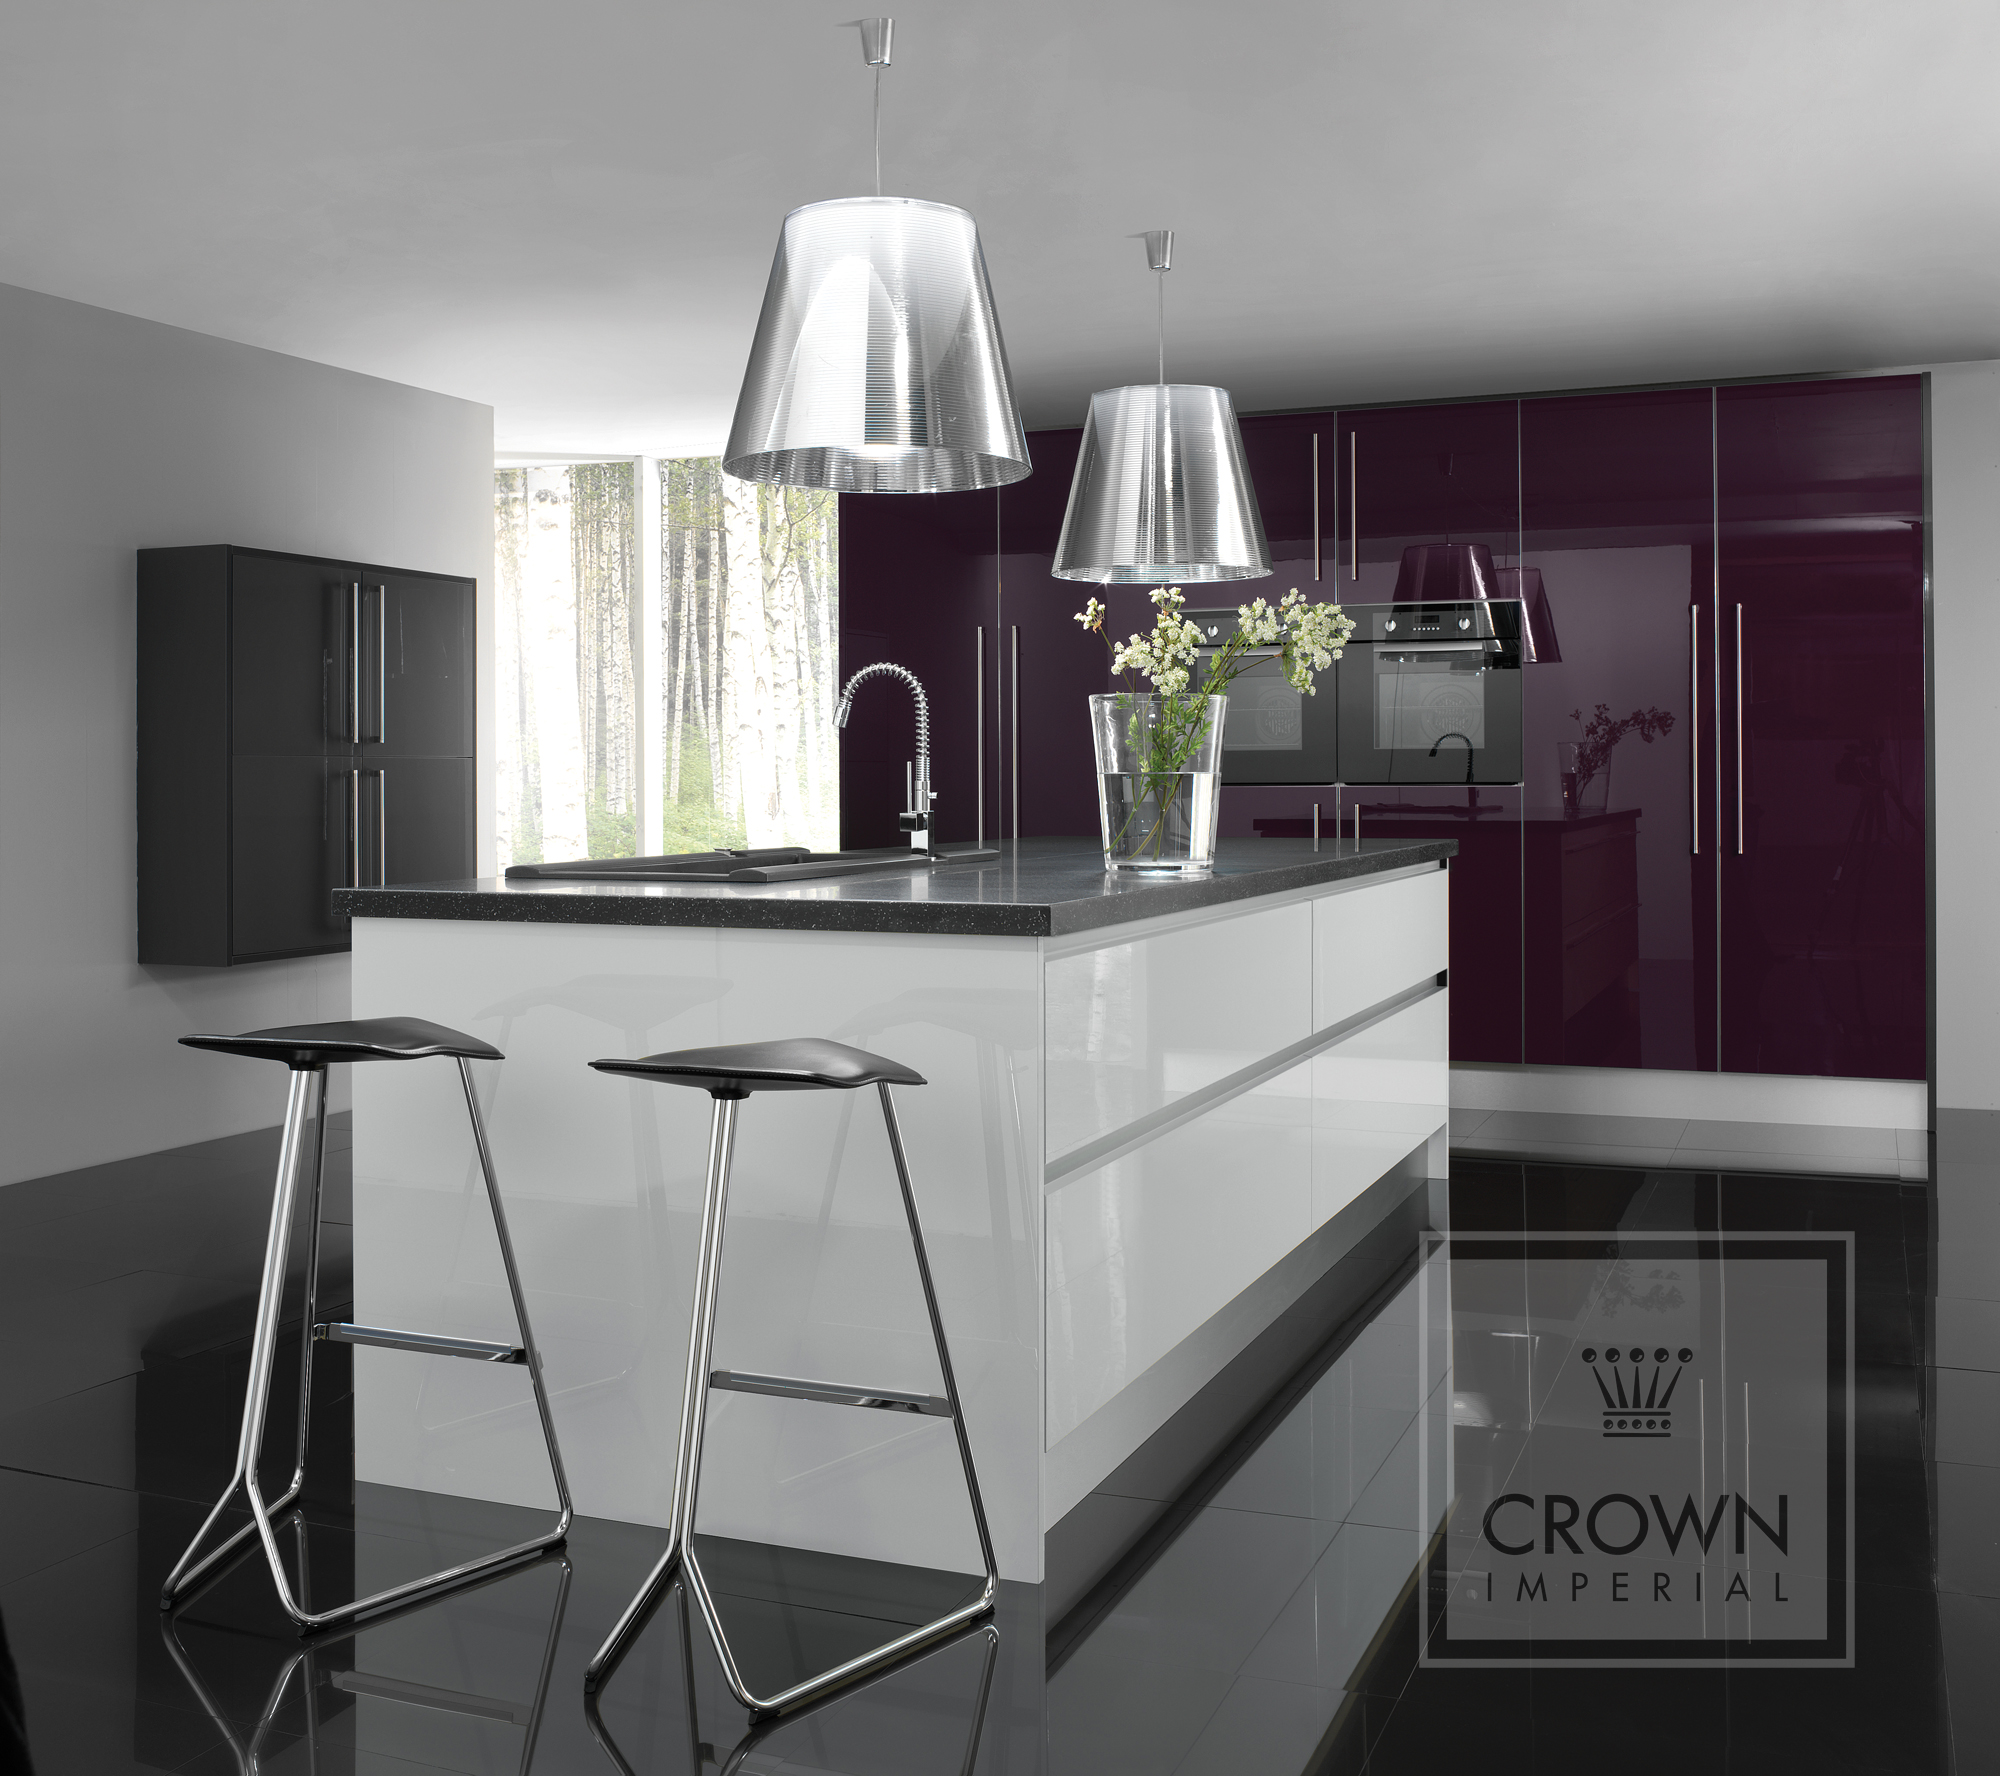 Rialto The Kitchen Centre - Dark grey gloss kitchen